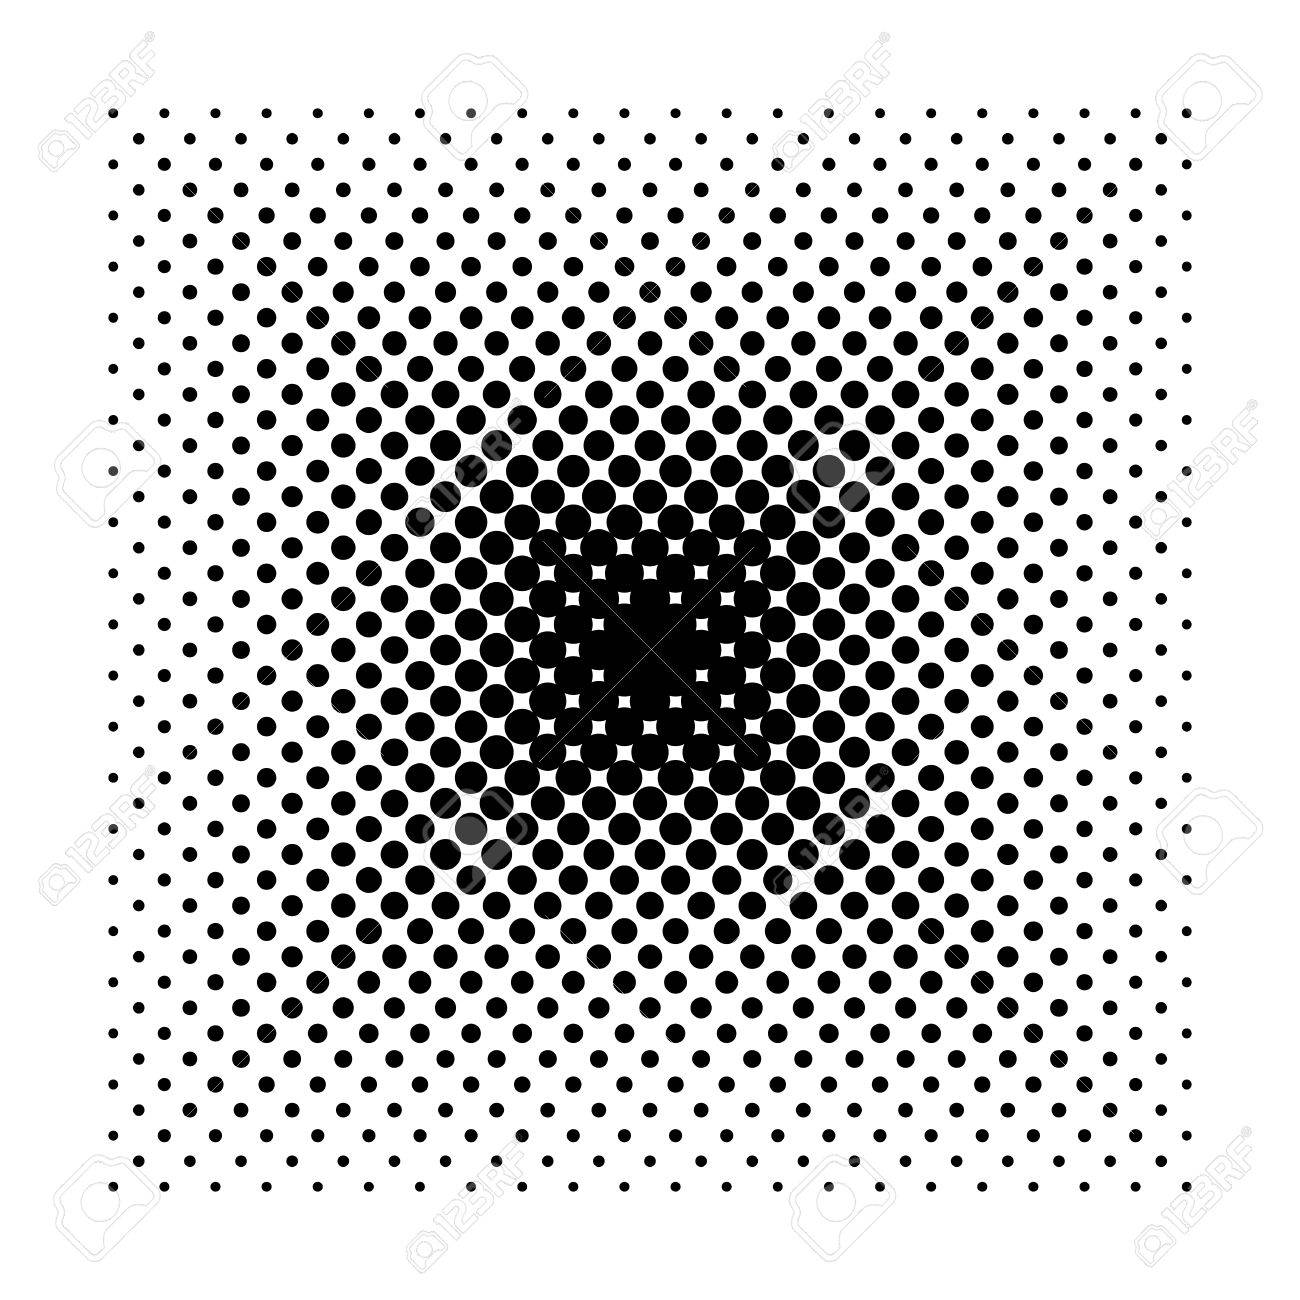 Vector Square Halftone Geometric Shapes Dot Minimal Design Abstract